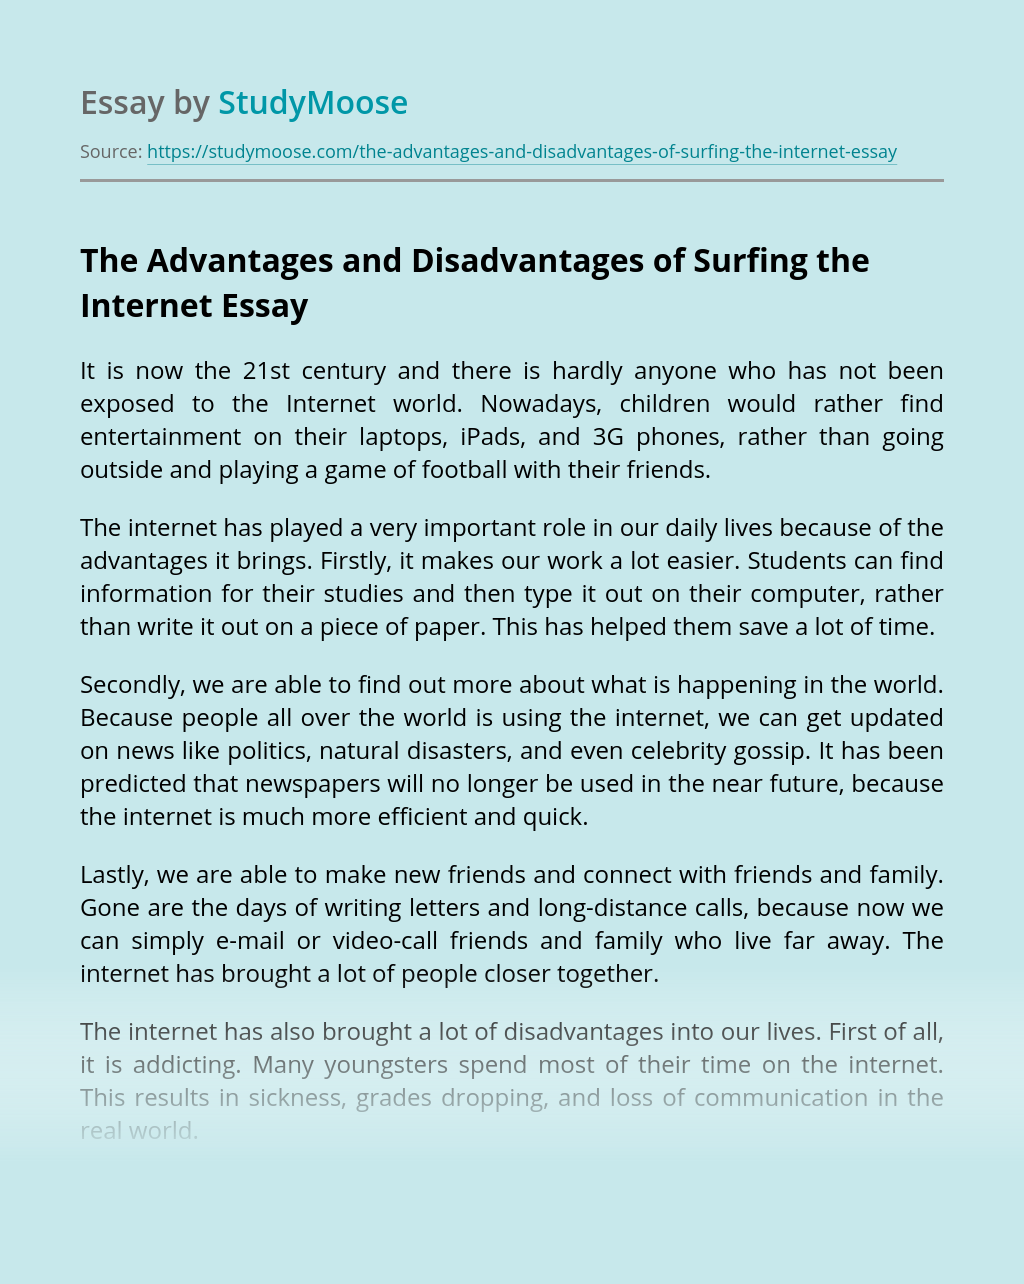 The Advantages and Disadvantages of Surfing the Internet